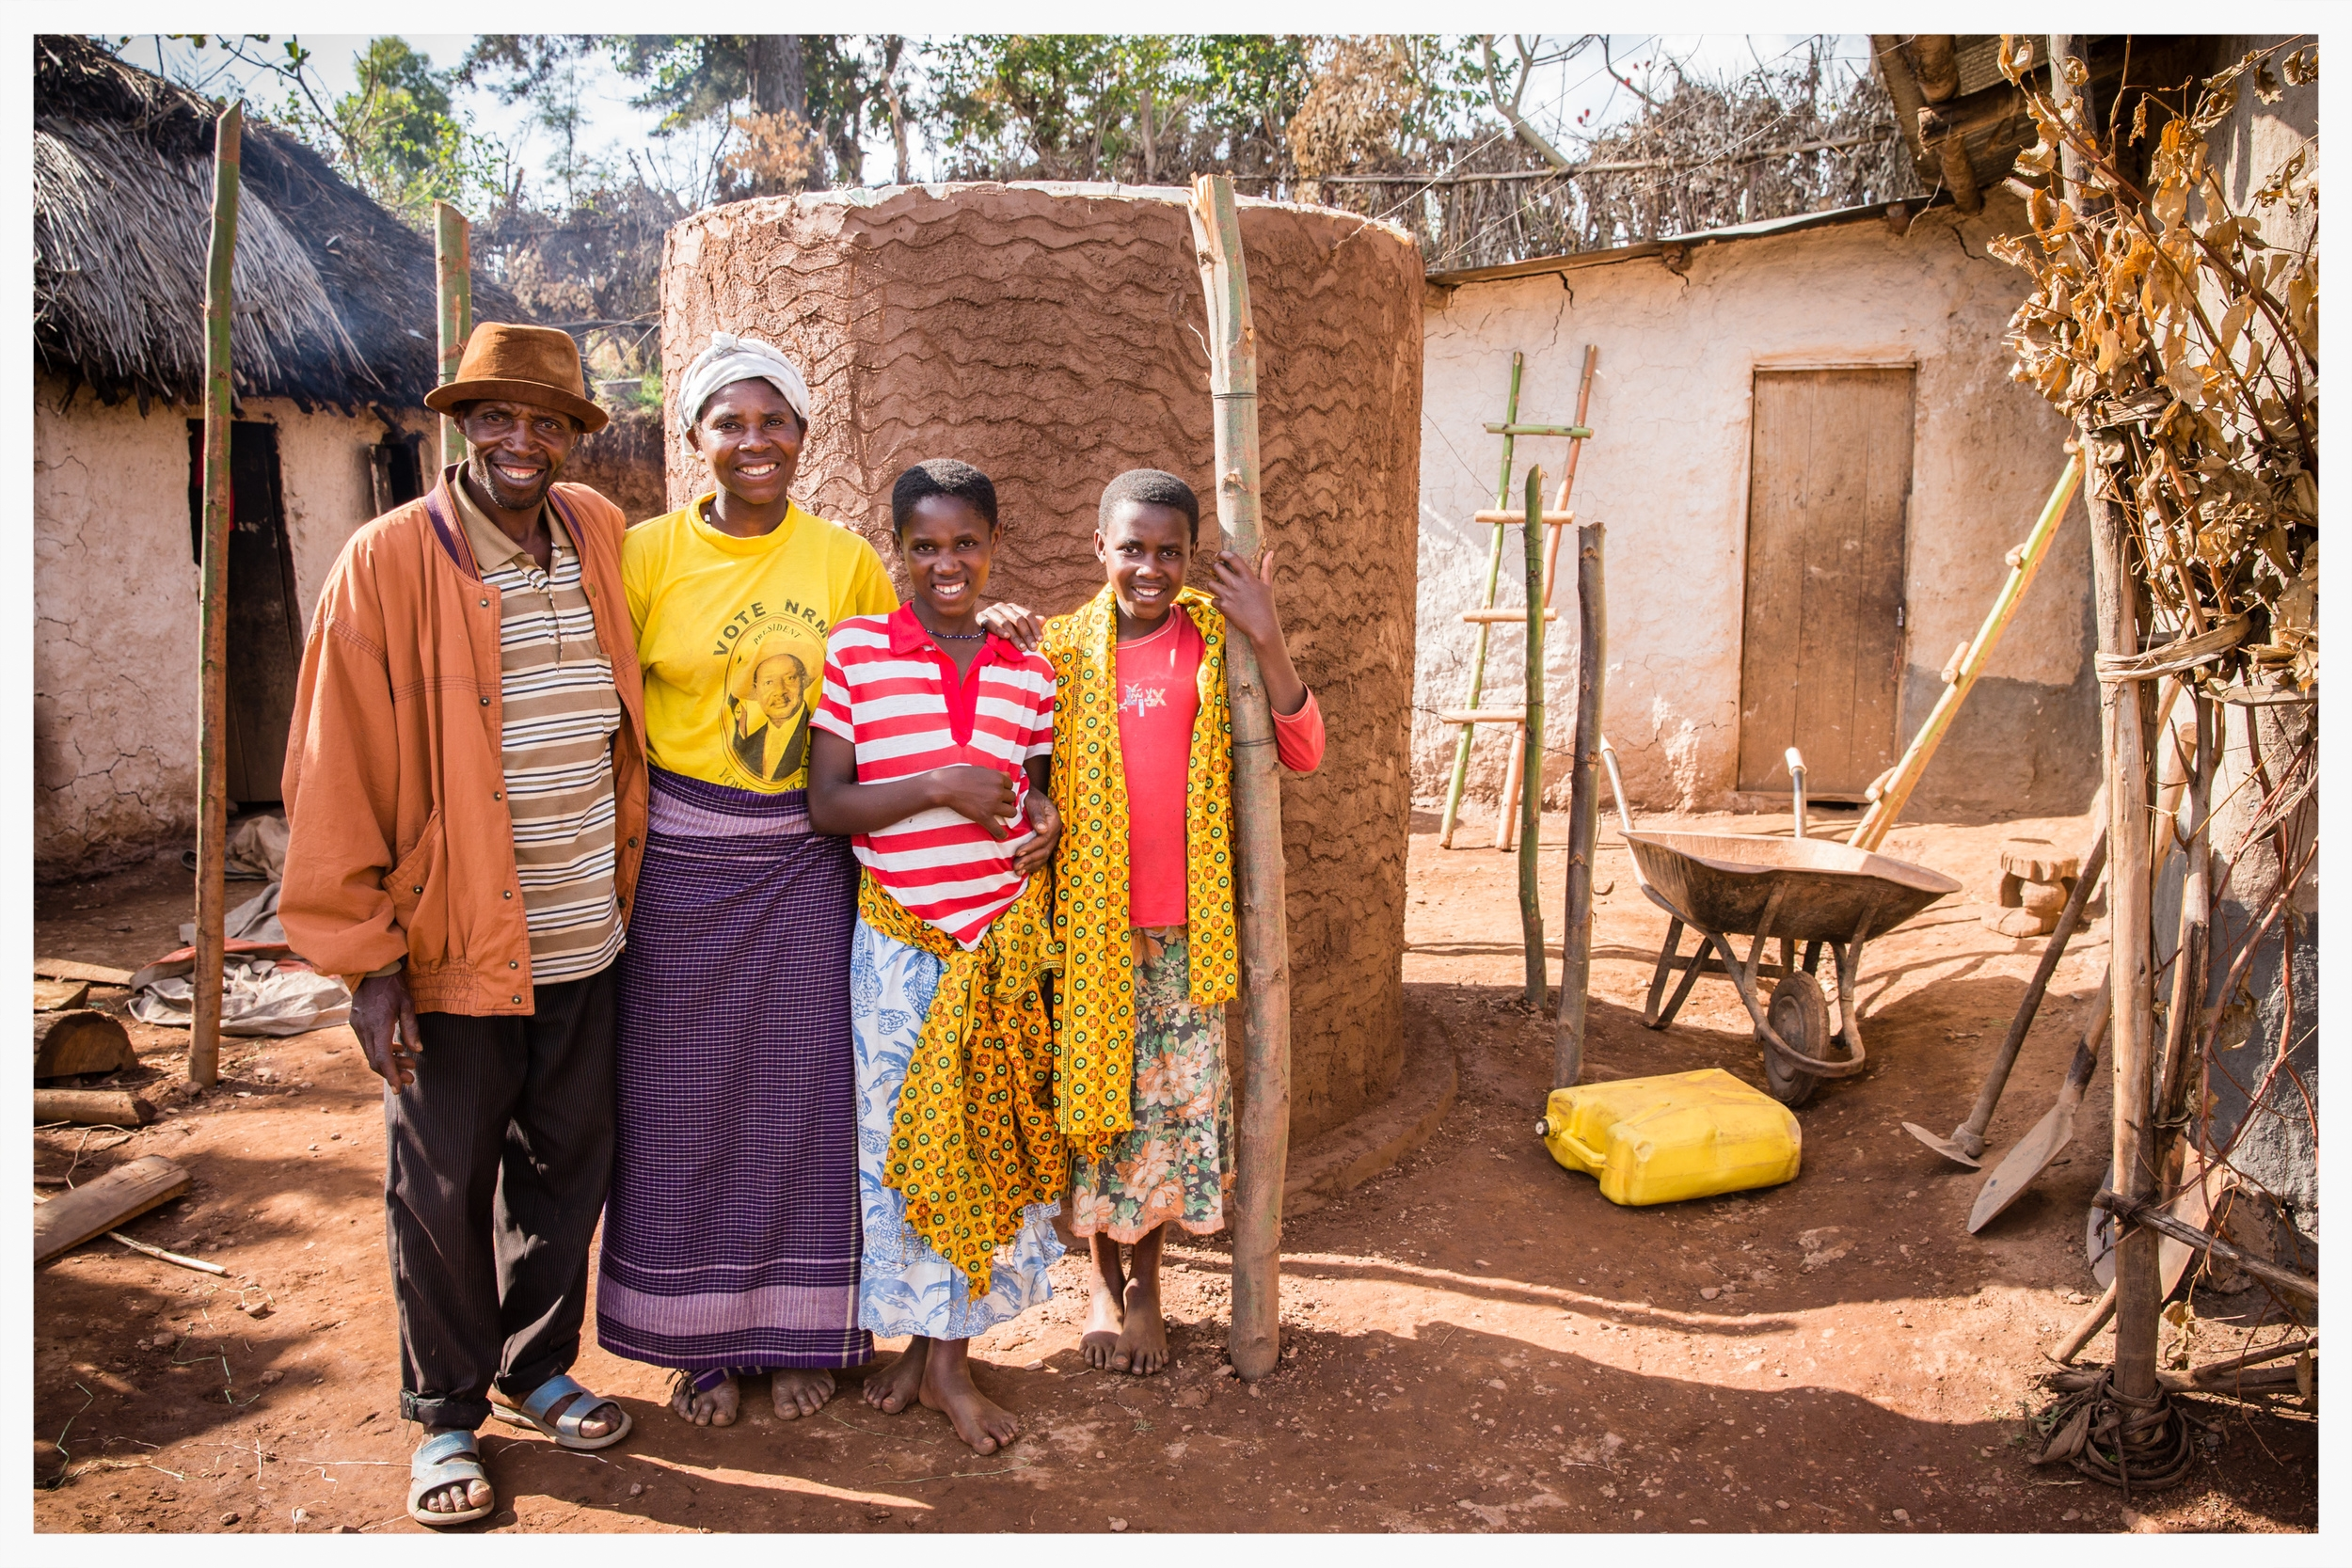 Milton and his family stand next to their water tank which will harvest rainwater from the roof of their home. Rwanyana village, south west Uganda. Photo © Marcus Perkins